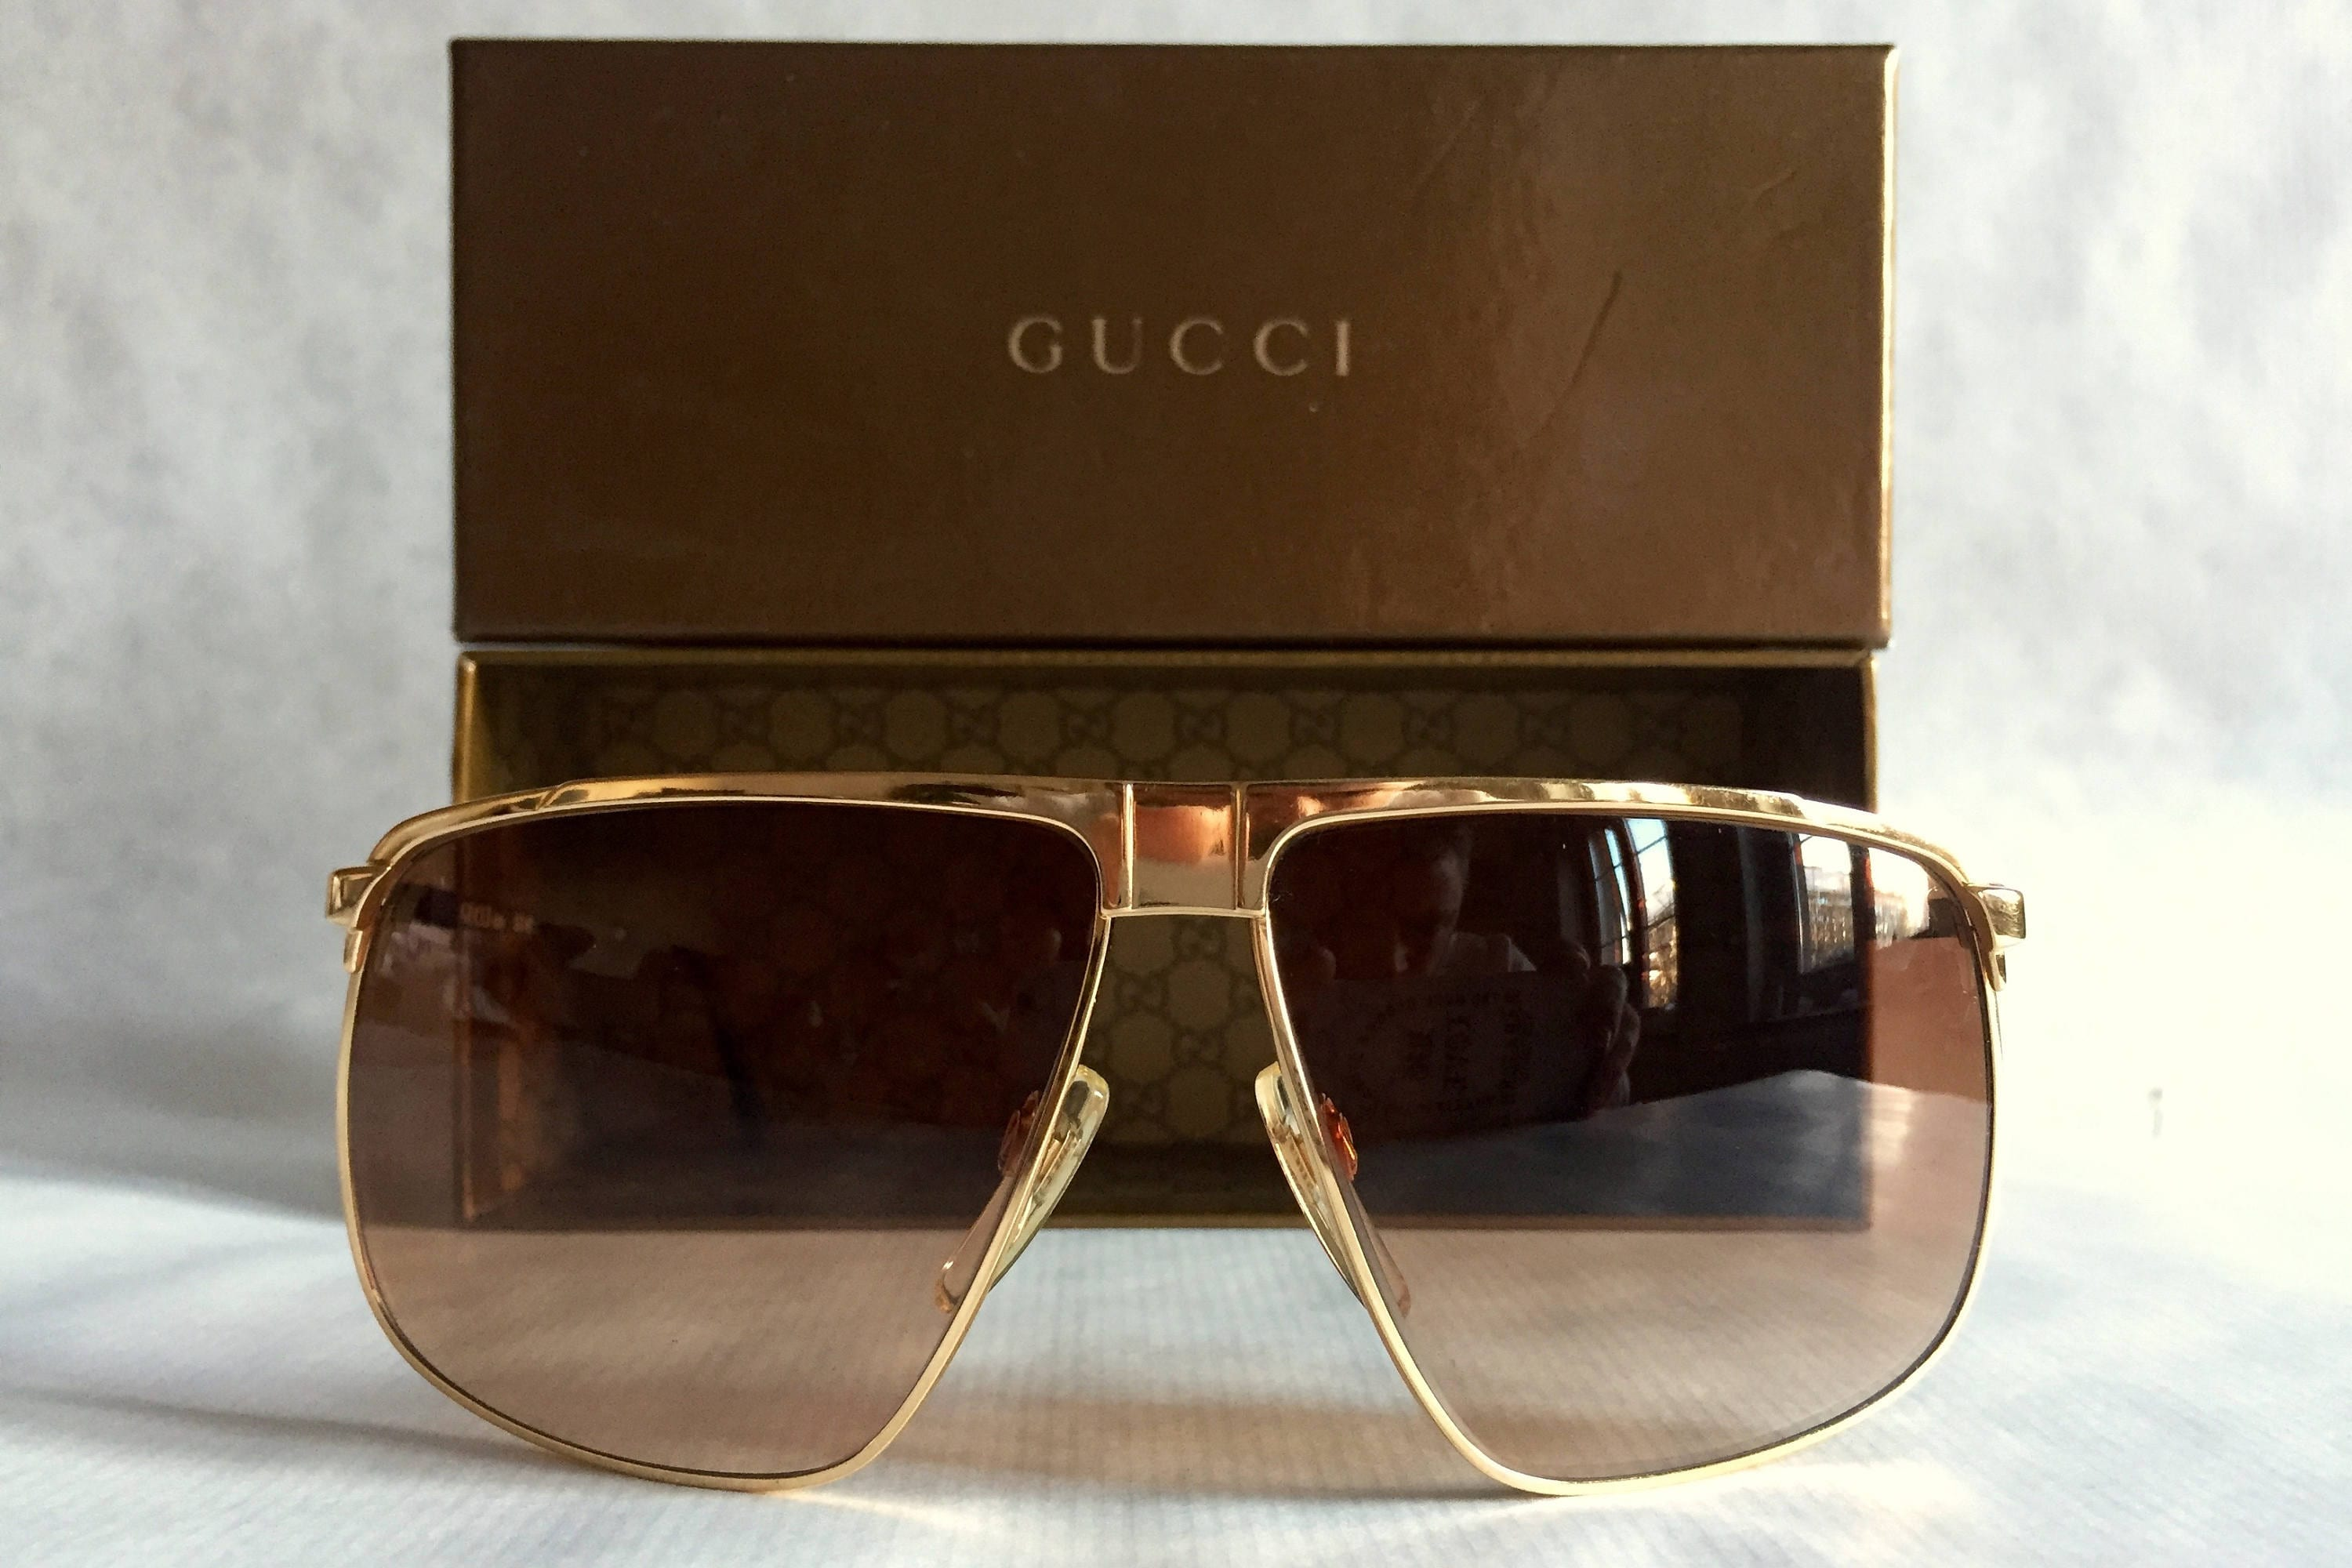 857ea41aefa GUCCI GG40 22kt Gold Vintage Sunglasses New Old Stock including Original  Box. gallery photo gallery photo gallery photo gallery photo gallery photo  ...